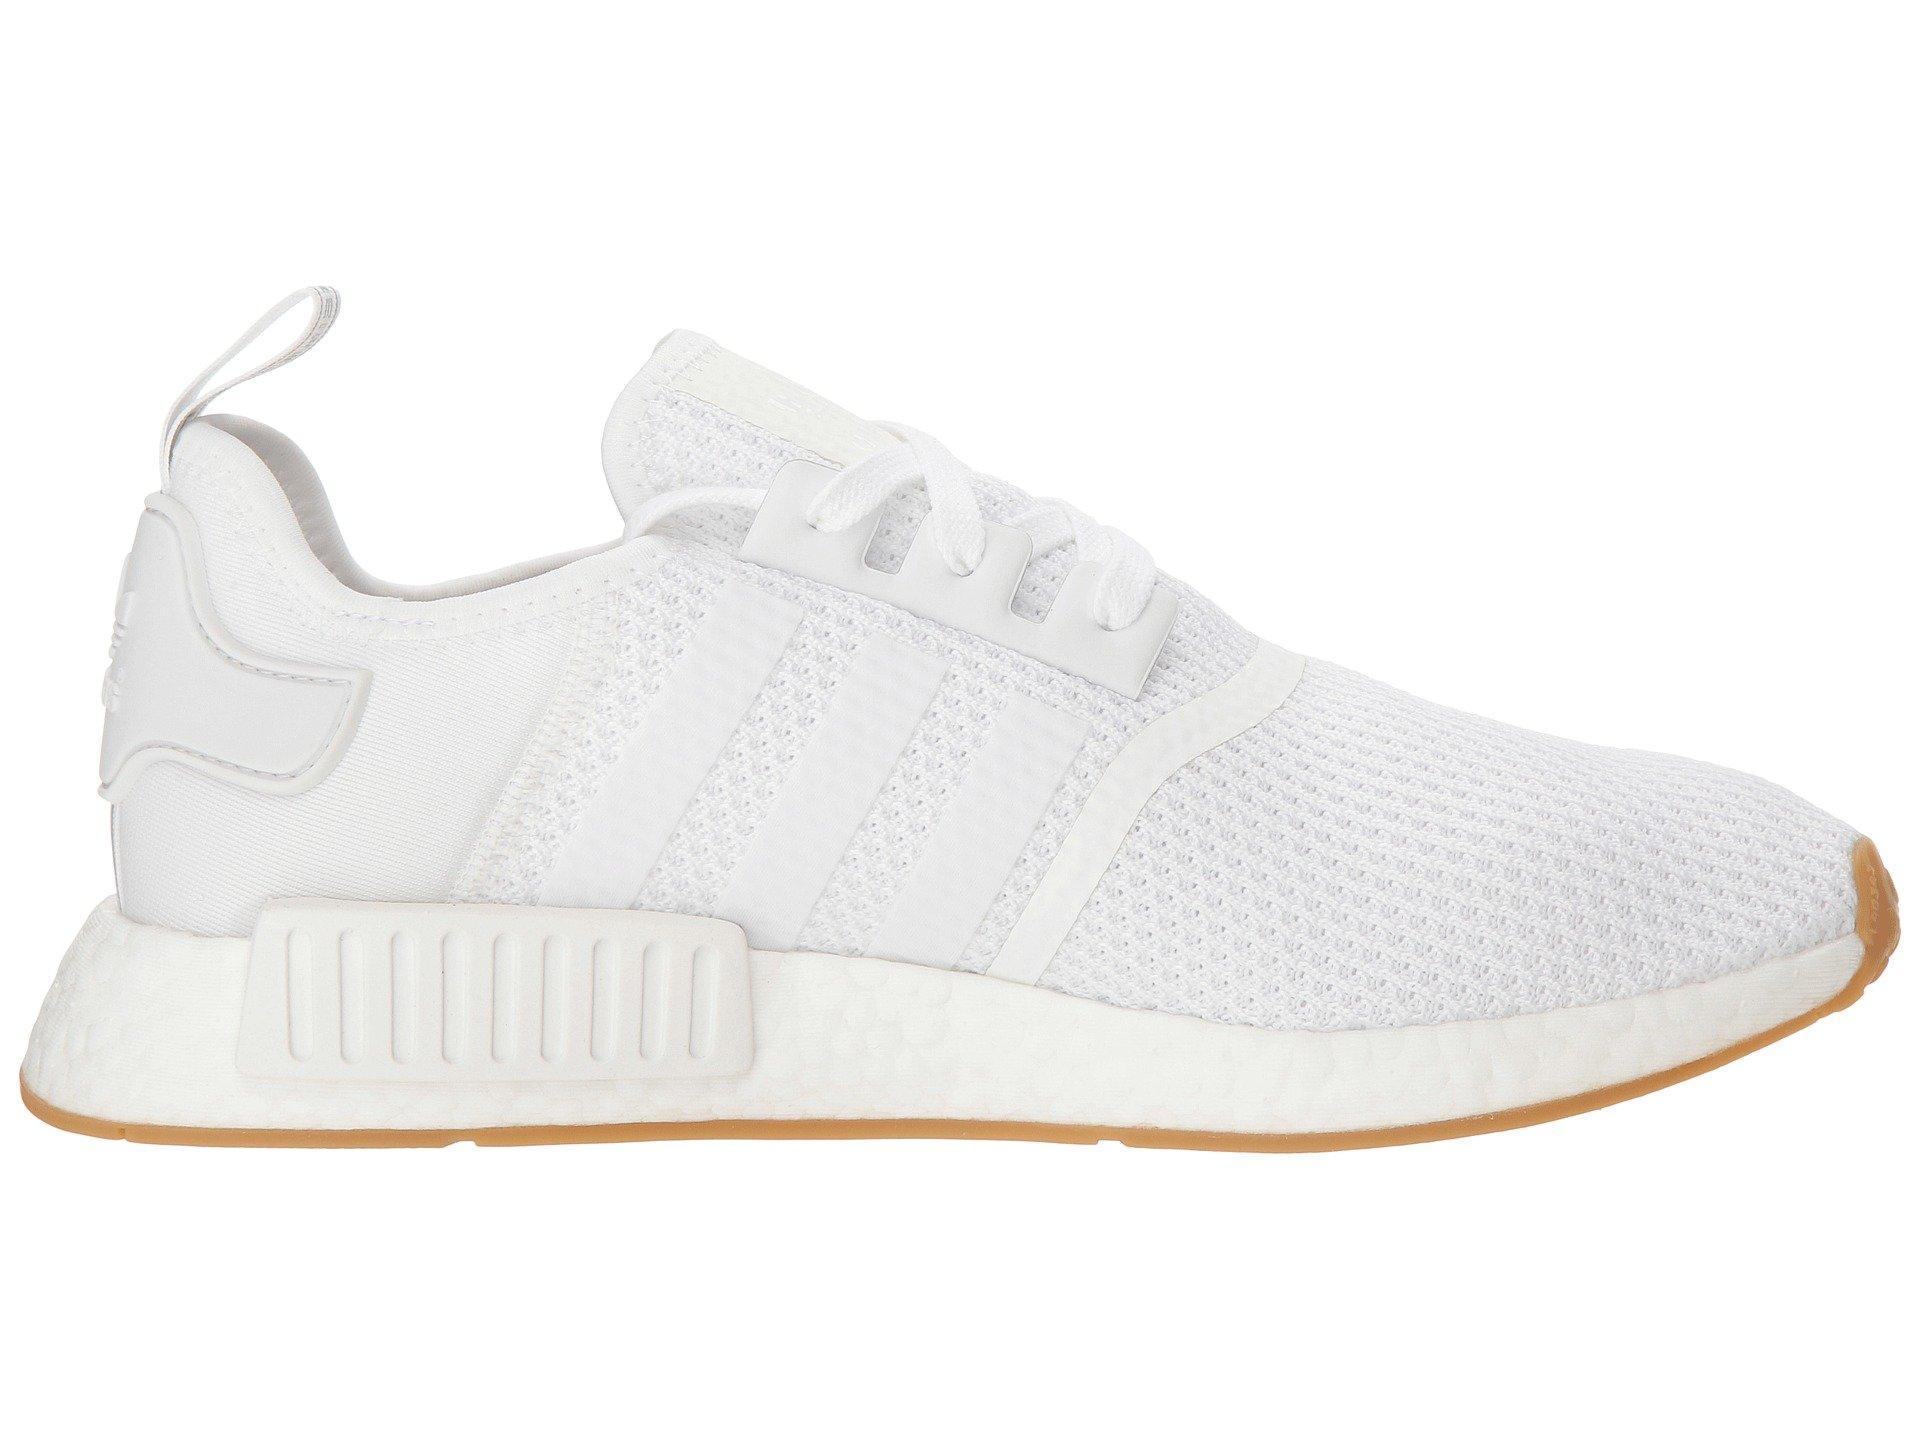 cde79b9f9b Lyst - adidas Originals Nmd r1 (grey Four F17 grey Four F17 shock Red)  Men s Running Shoes in White for Men